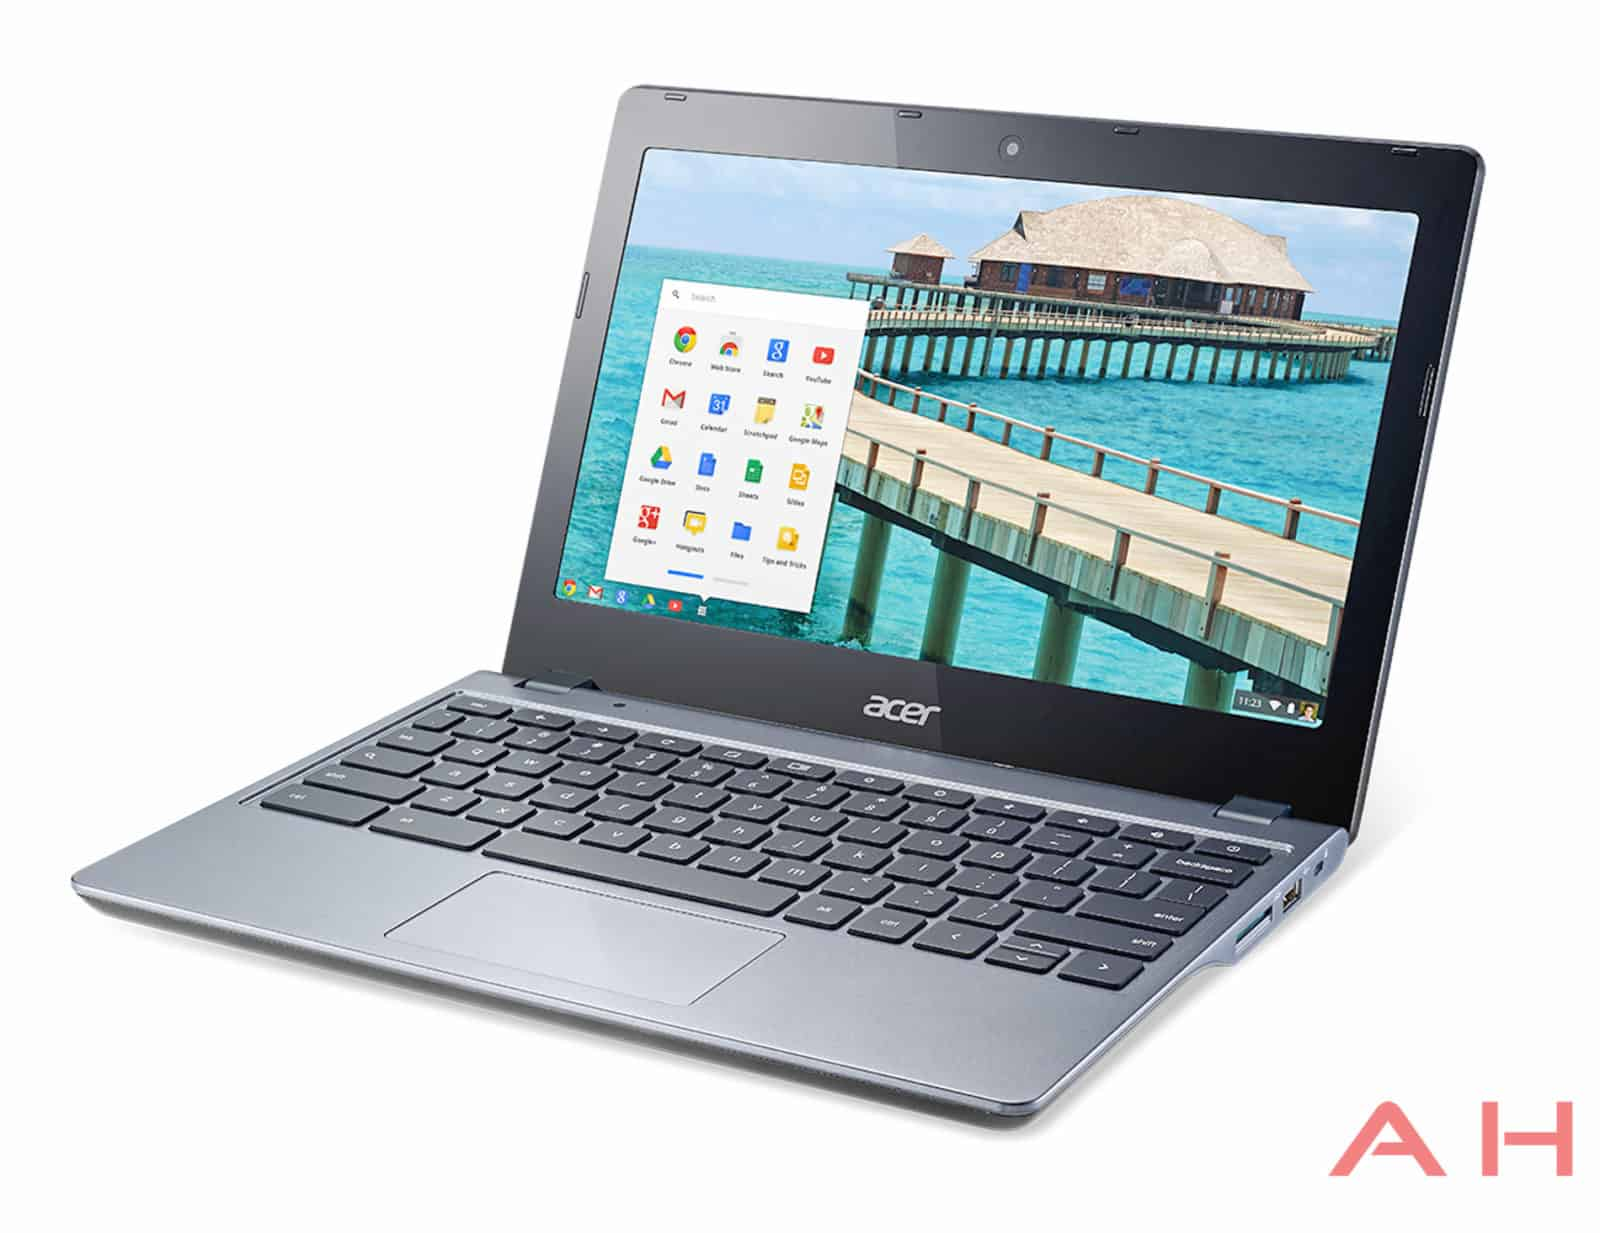 Acer-Chromebook-C720-Core-i3-AH-10